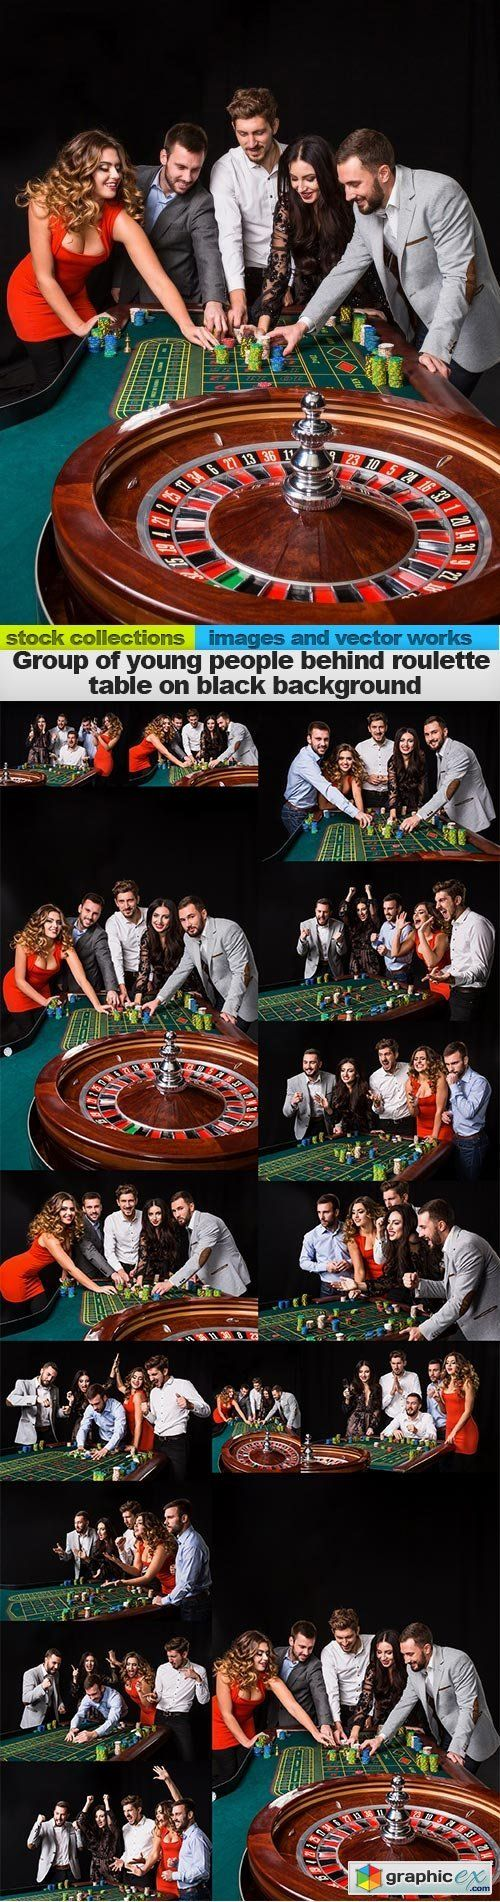 Wooden roulette buy black wooden roulette blackjack table led - Group Of Young People Behind Roulette Table On Black Background 15 X Uhq Jpeg Stock Images